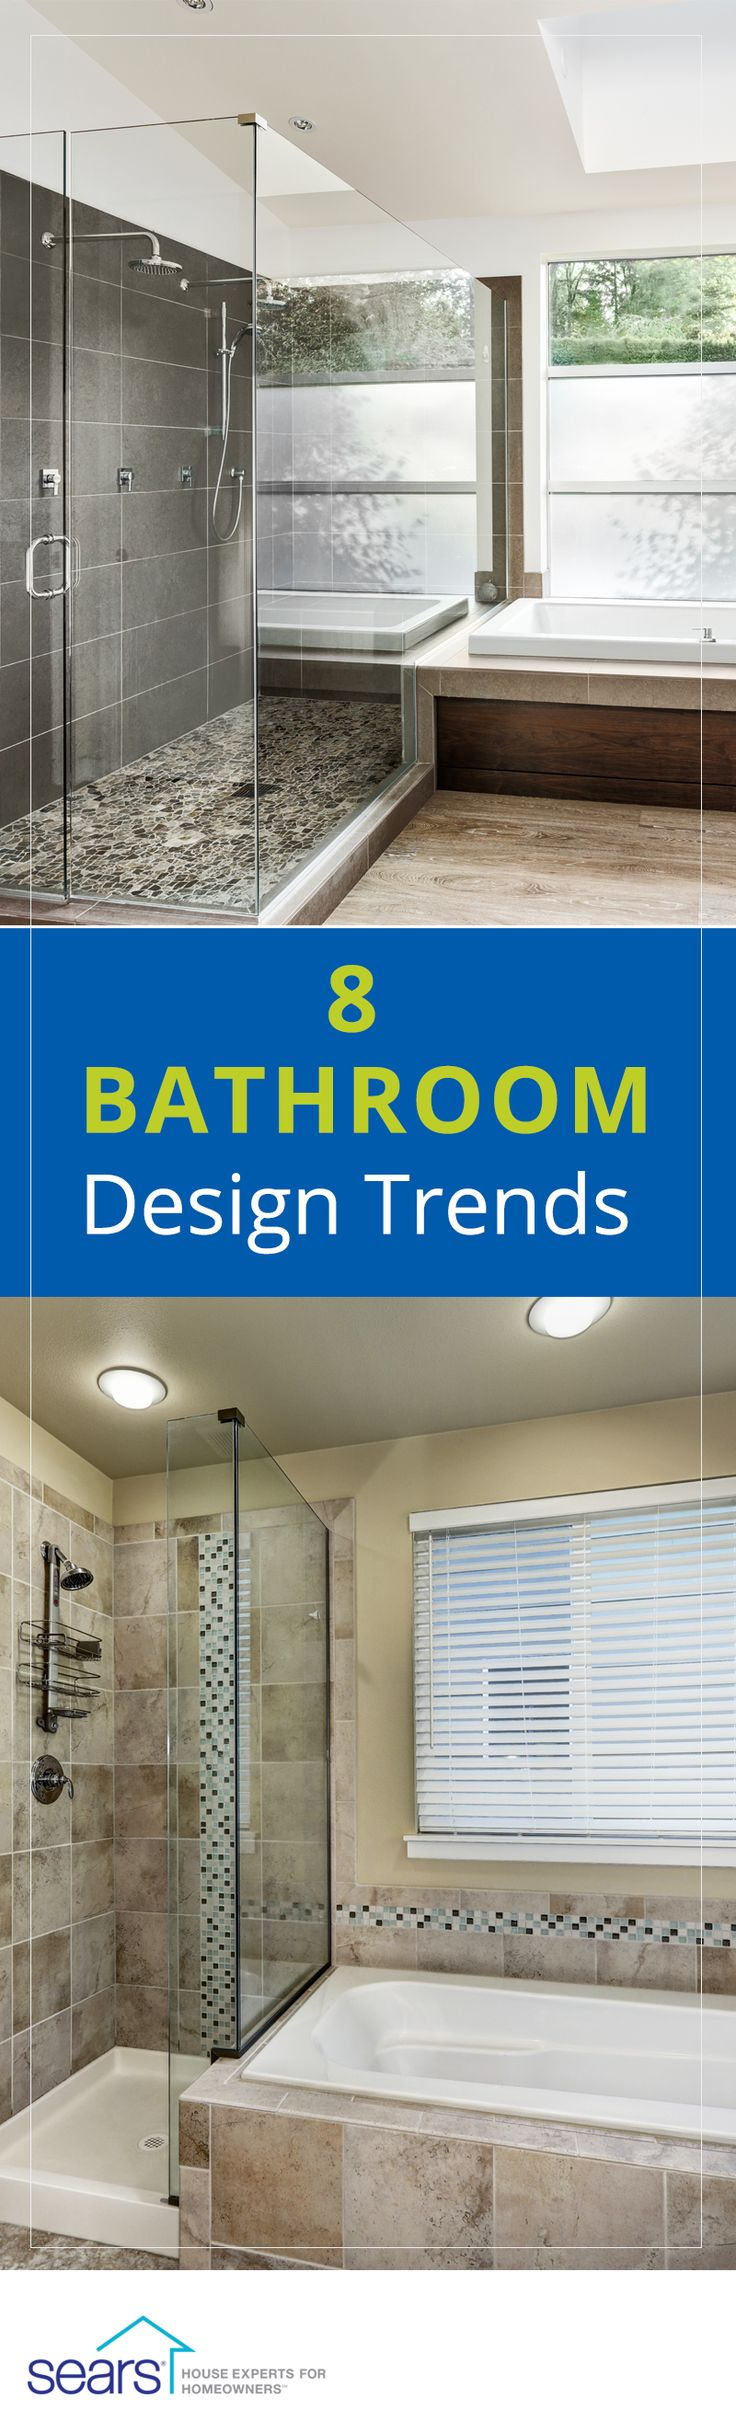 13 best Bathroom Remodel & Renovation images on Pinterest | Bathroom ...